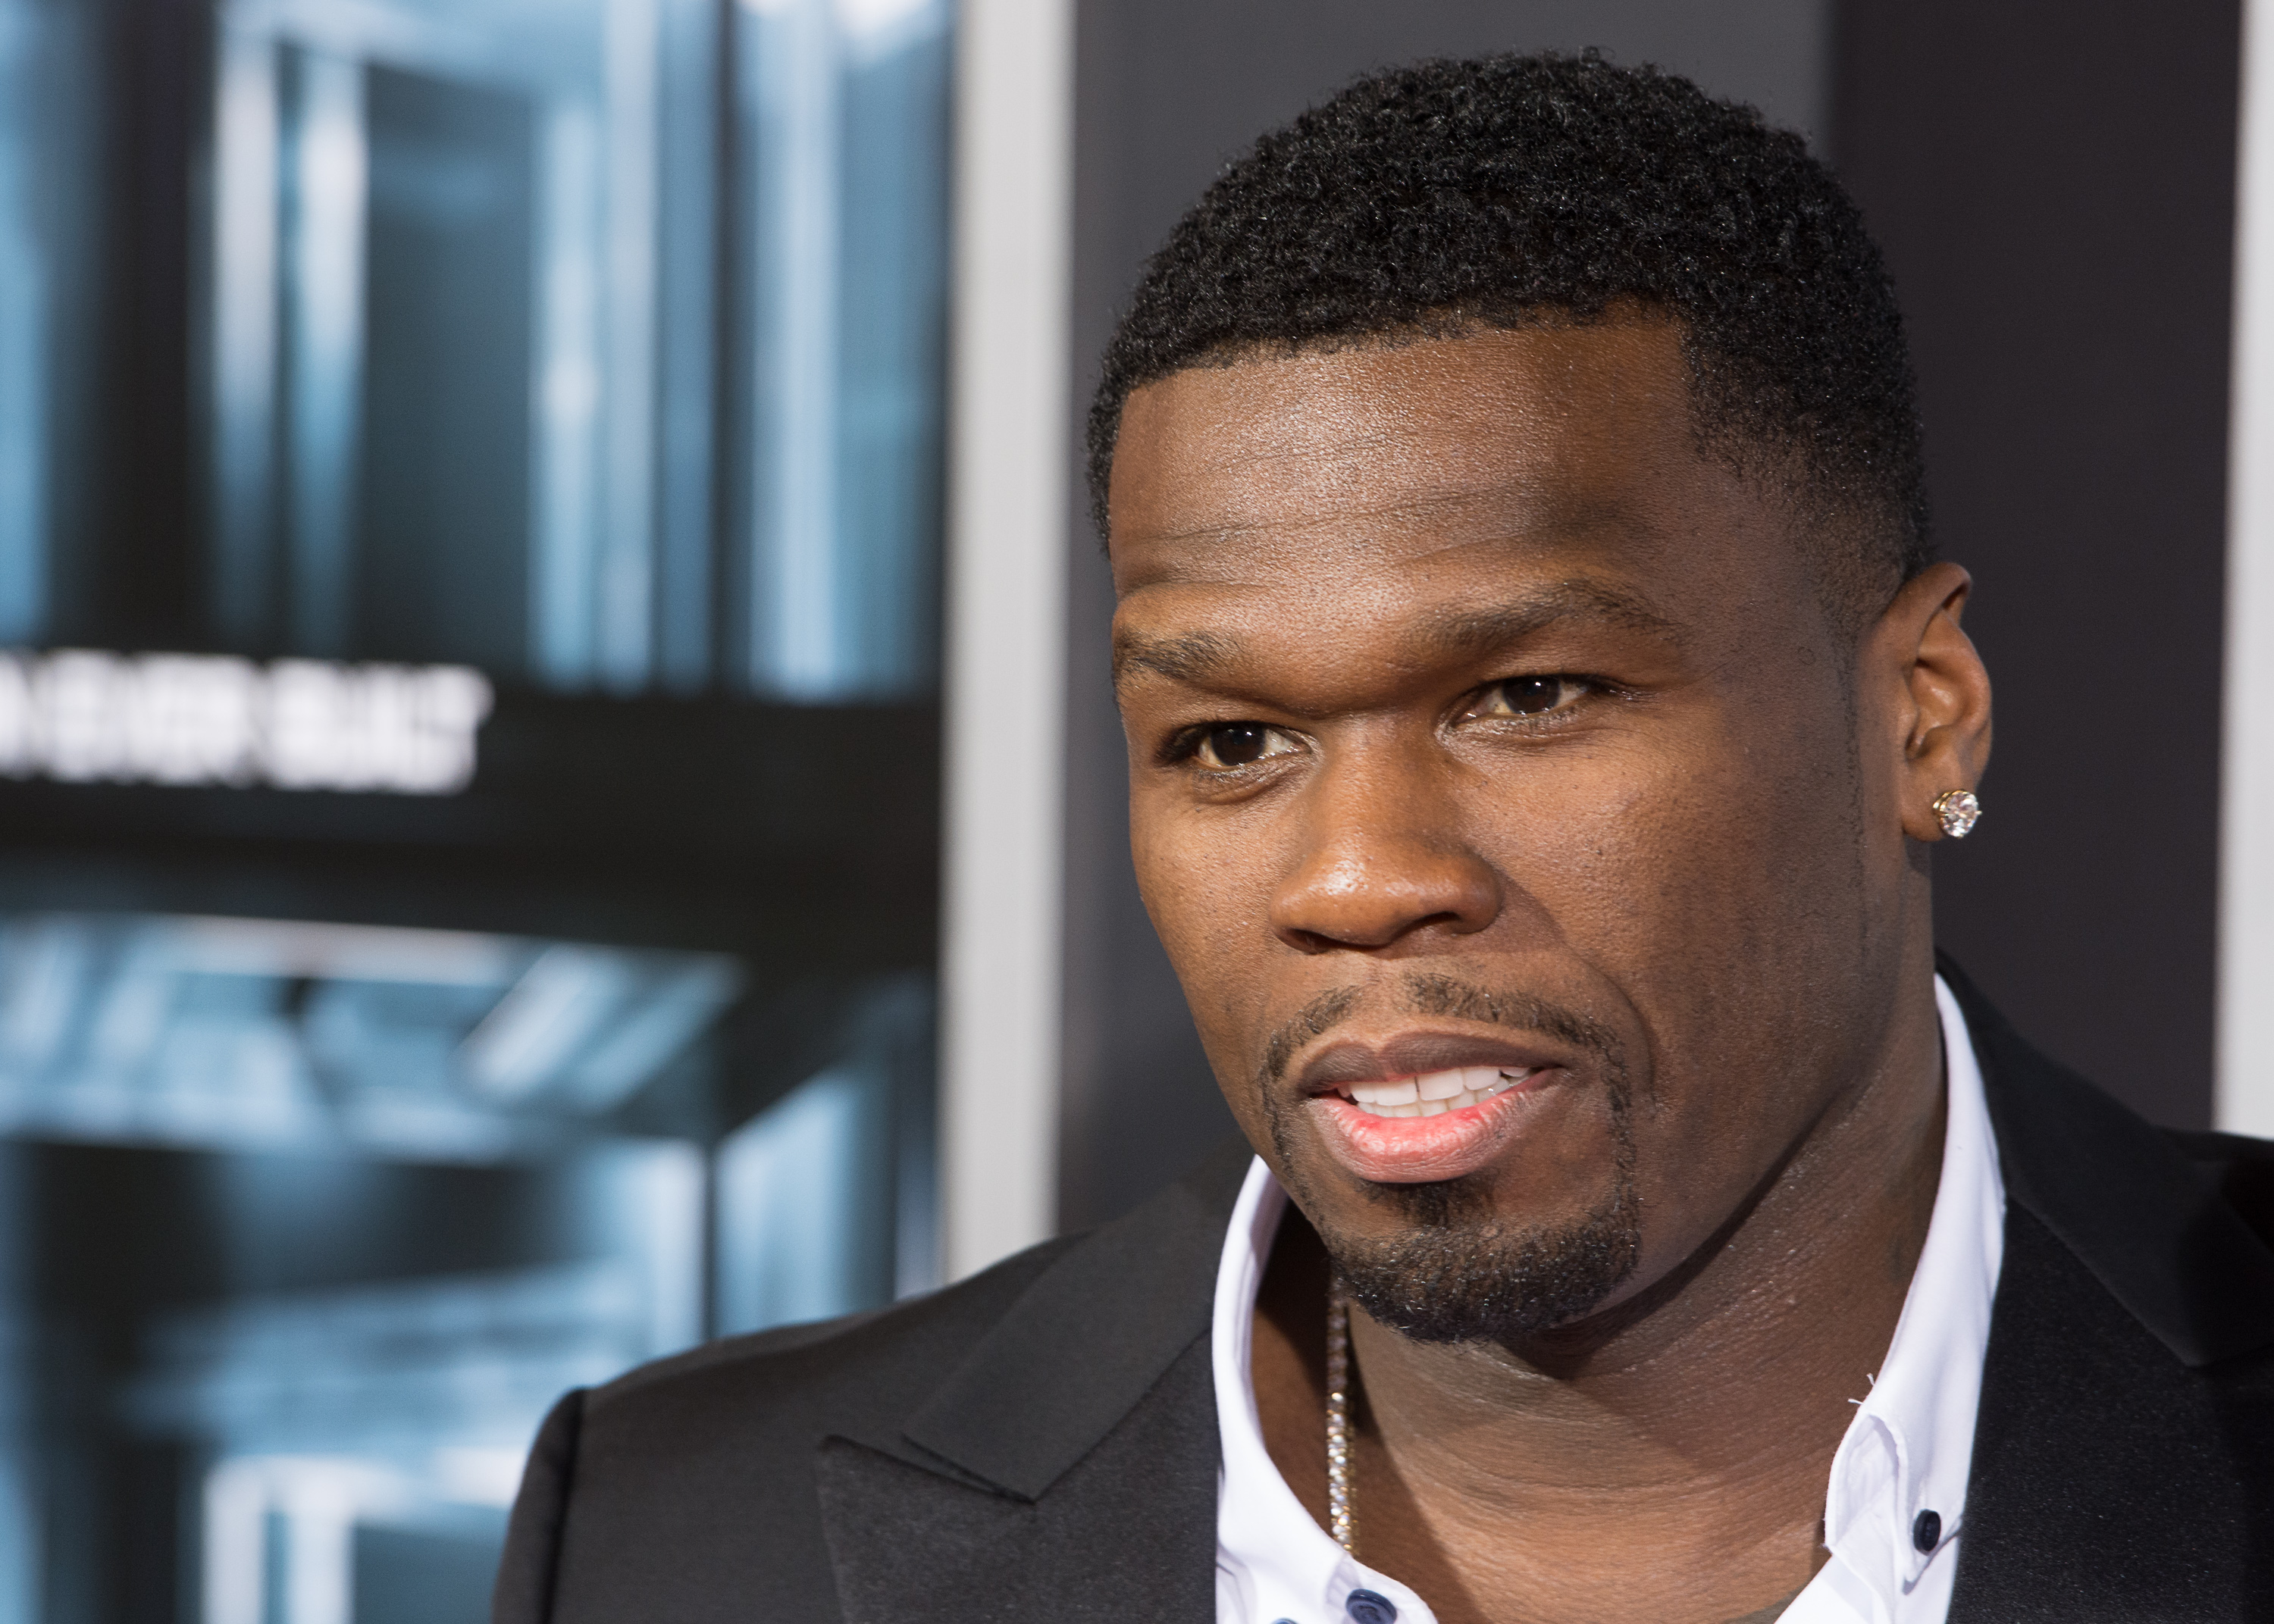 50 cent celebrity wallpaper pictures 58982